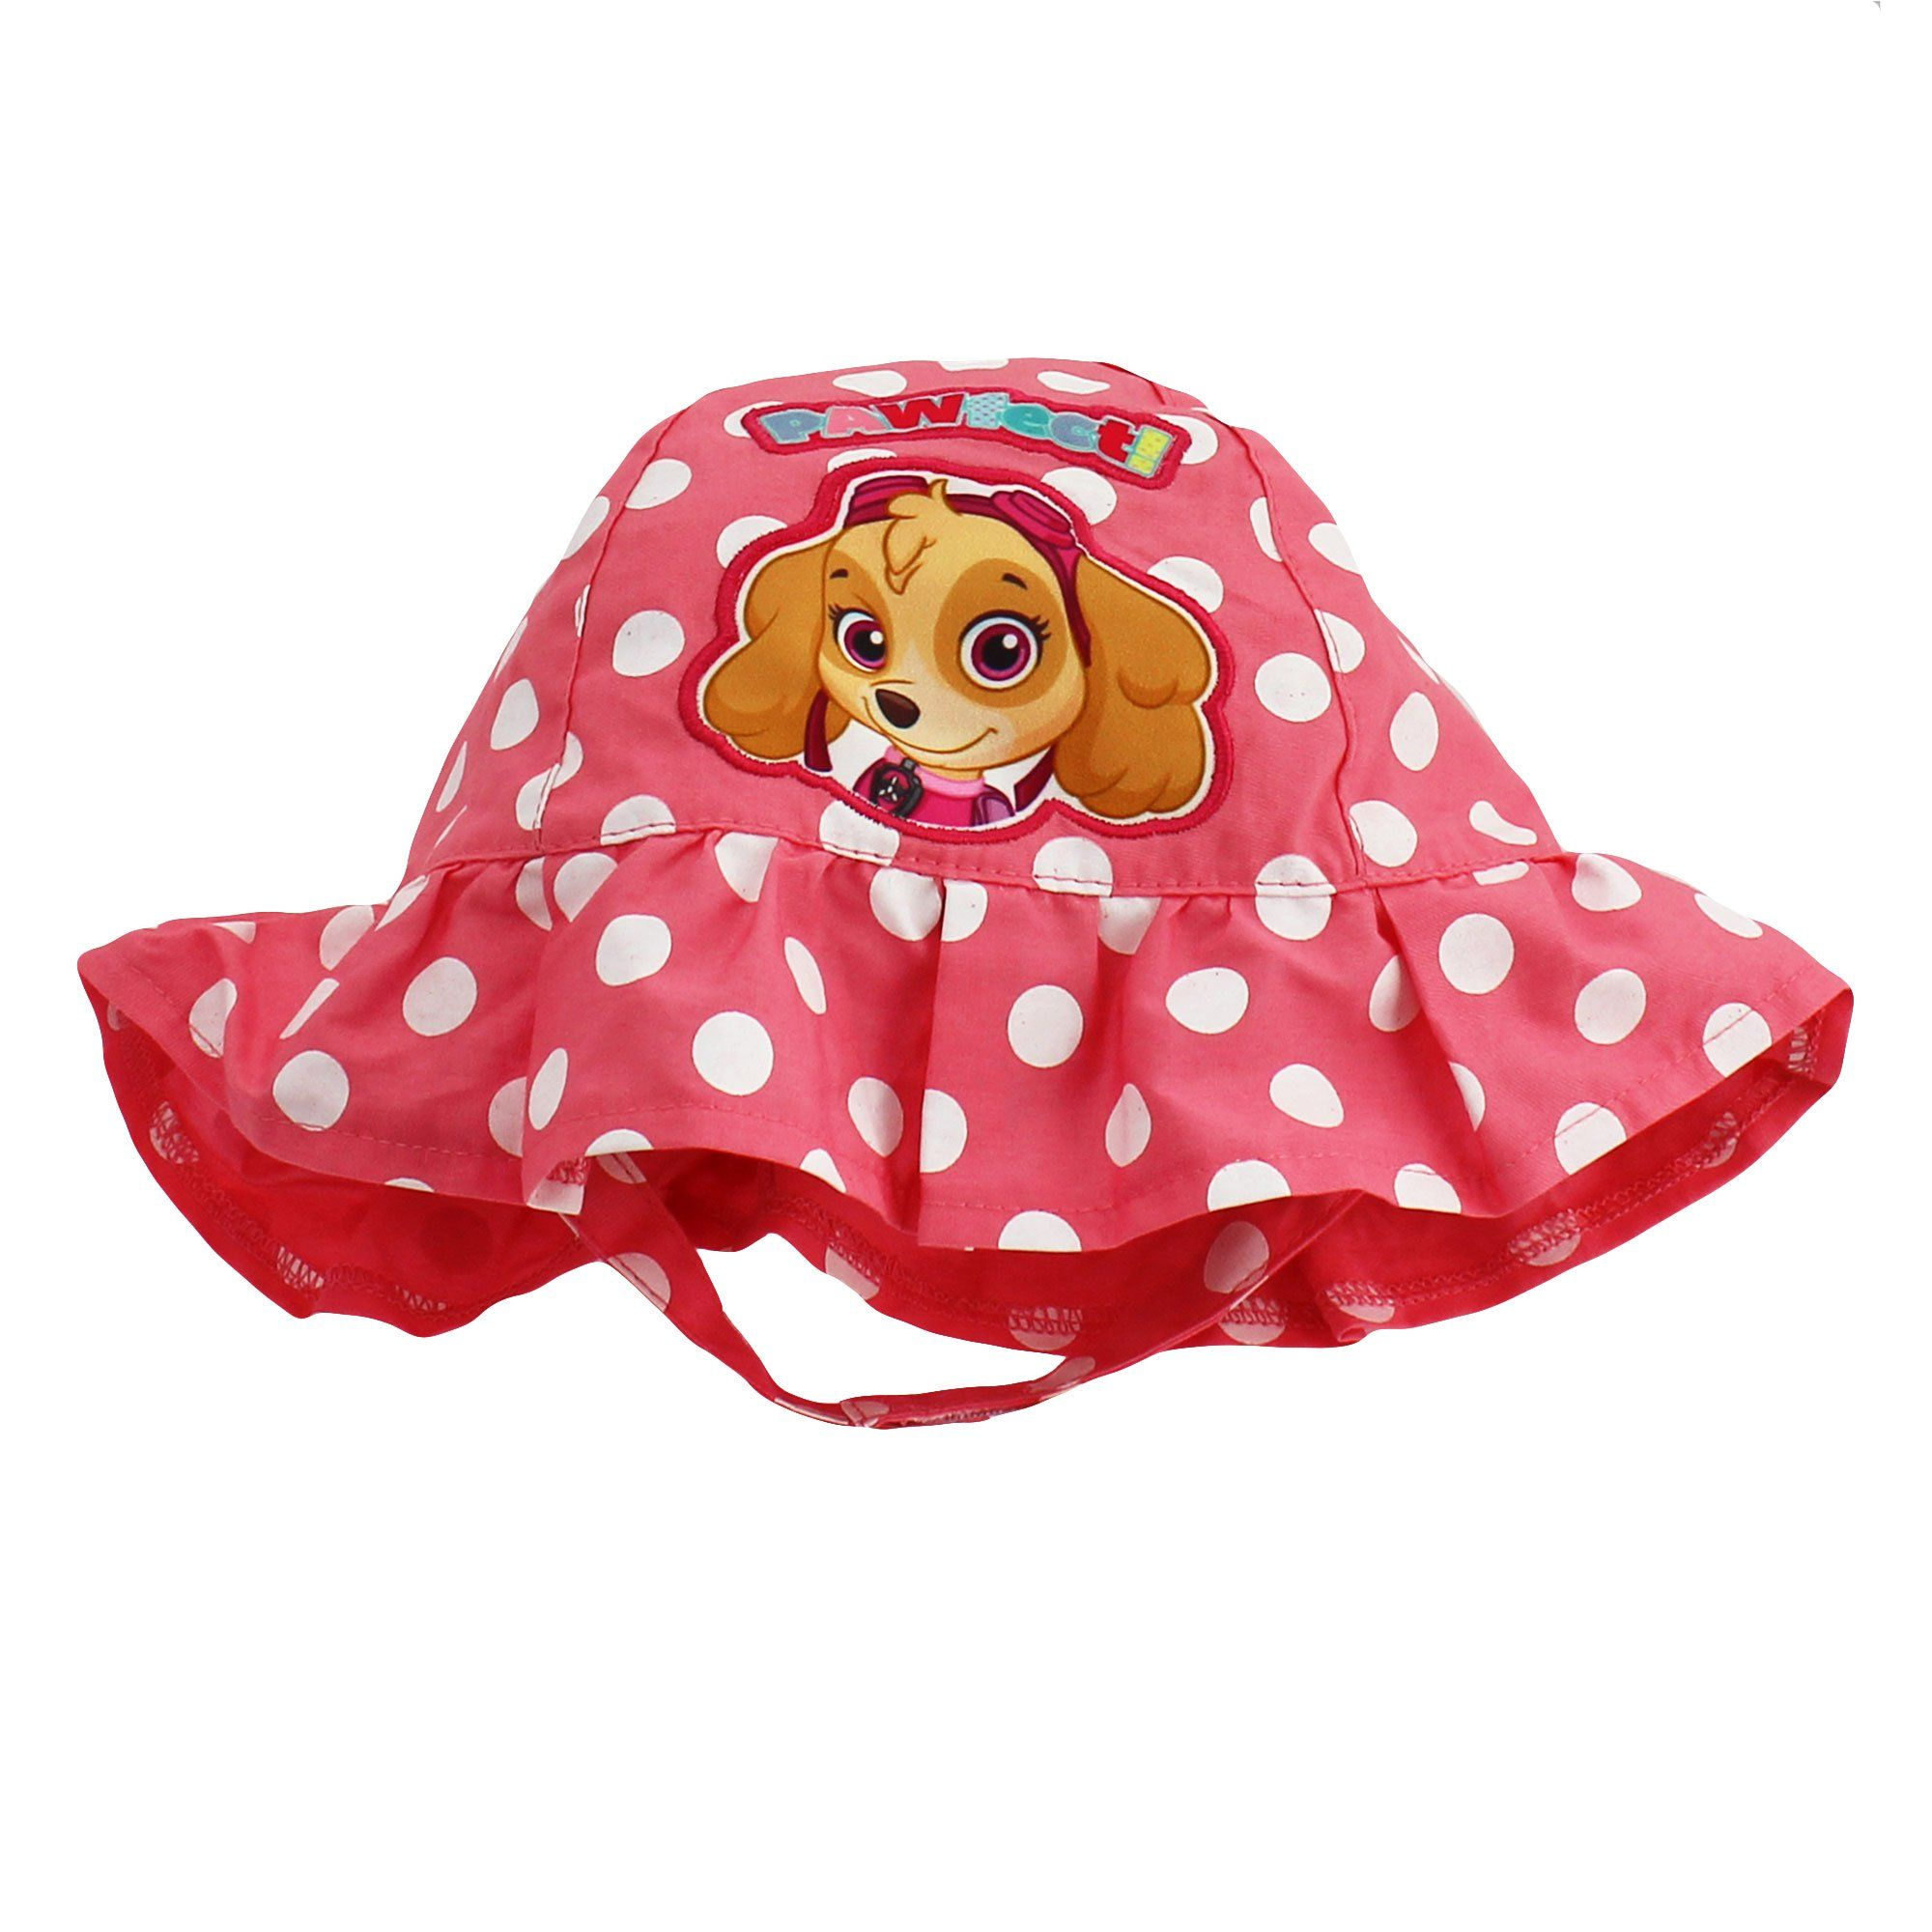 71dfb4d71 Paw Patrol Nickelodeon Nick Jr Skye Toddler Girls Sun Hat Bucket Hat ...